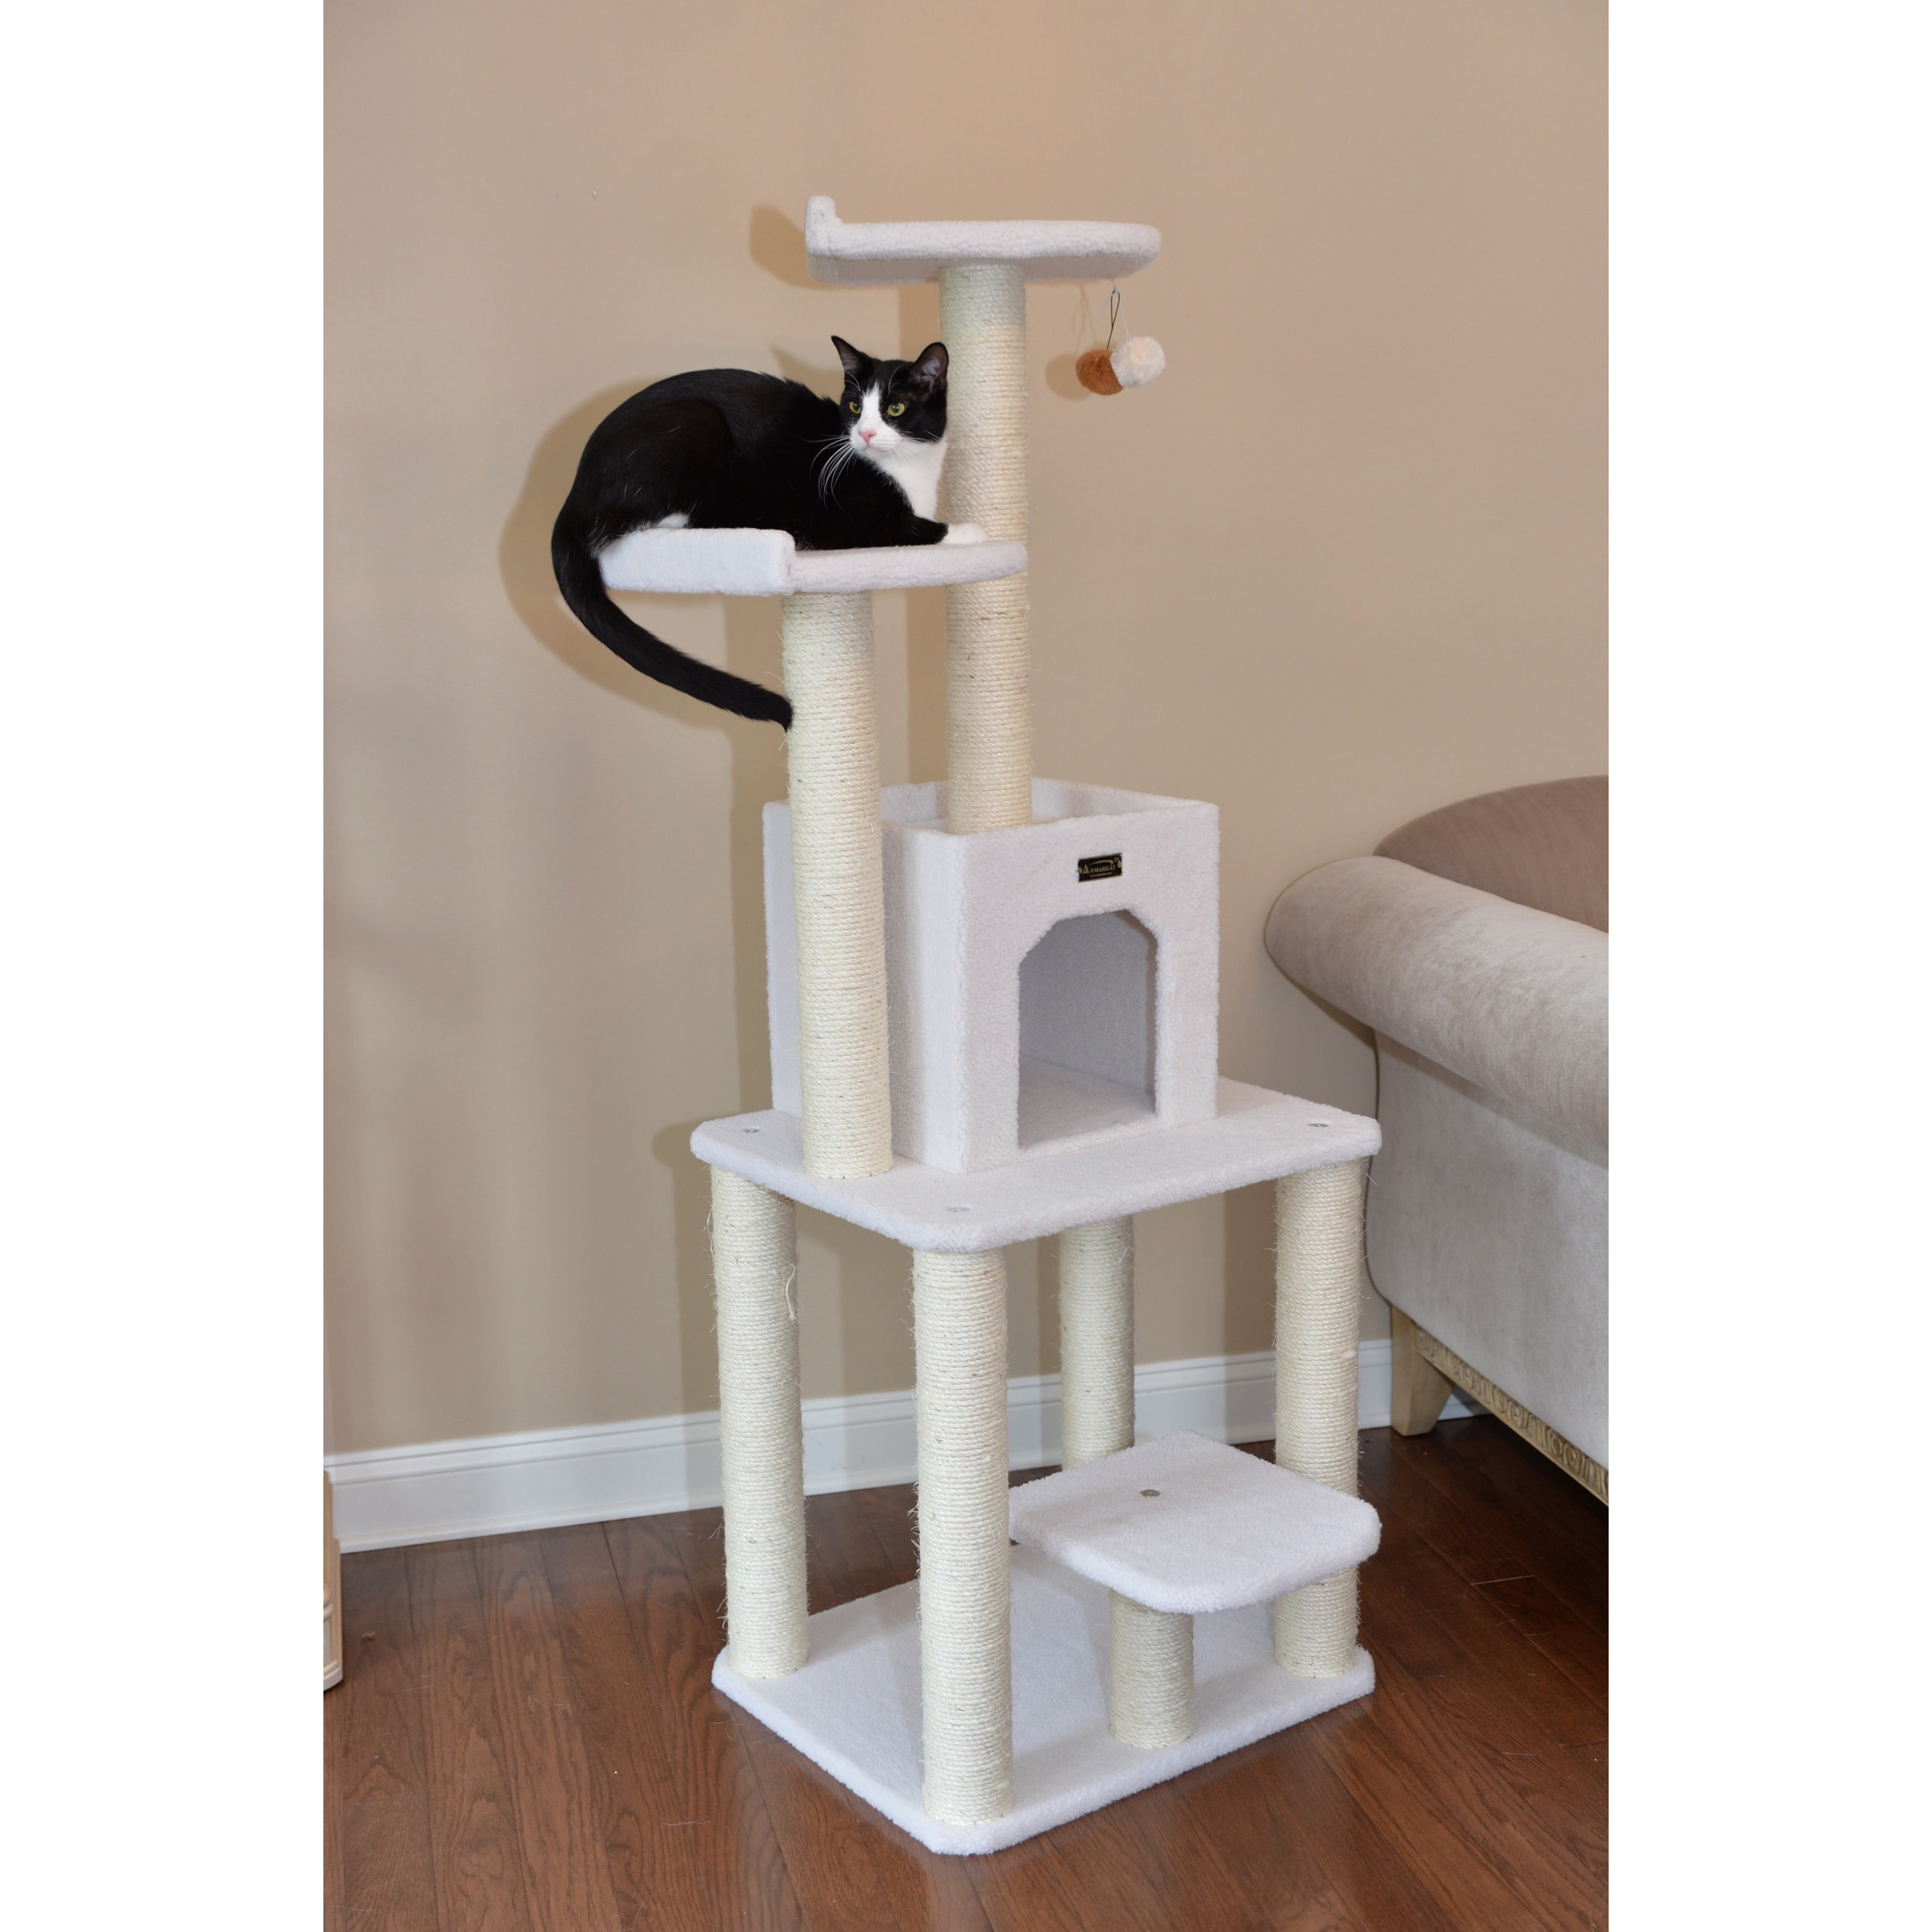 cfm tree baxterboo p inch beige day classic furniture with cat armarkat shipping same